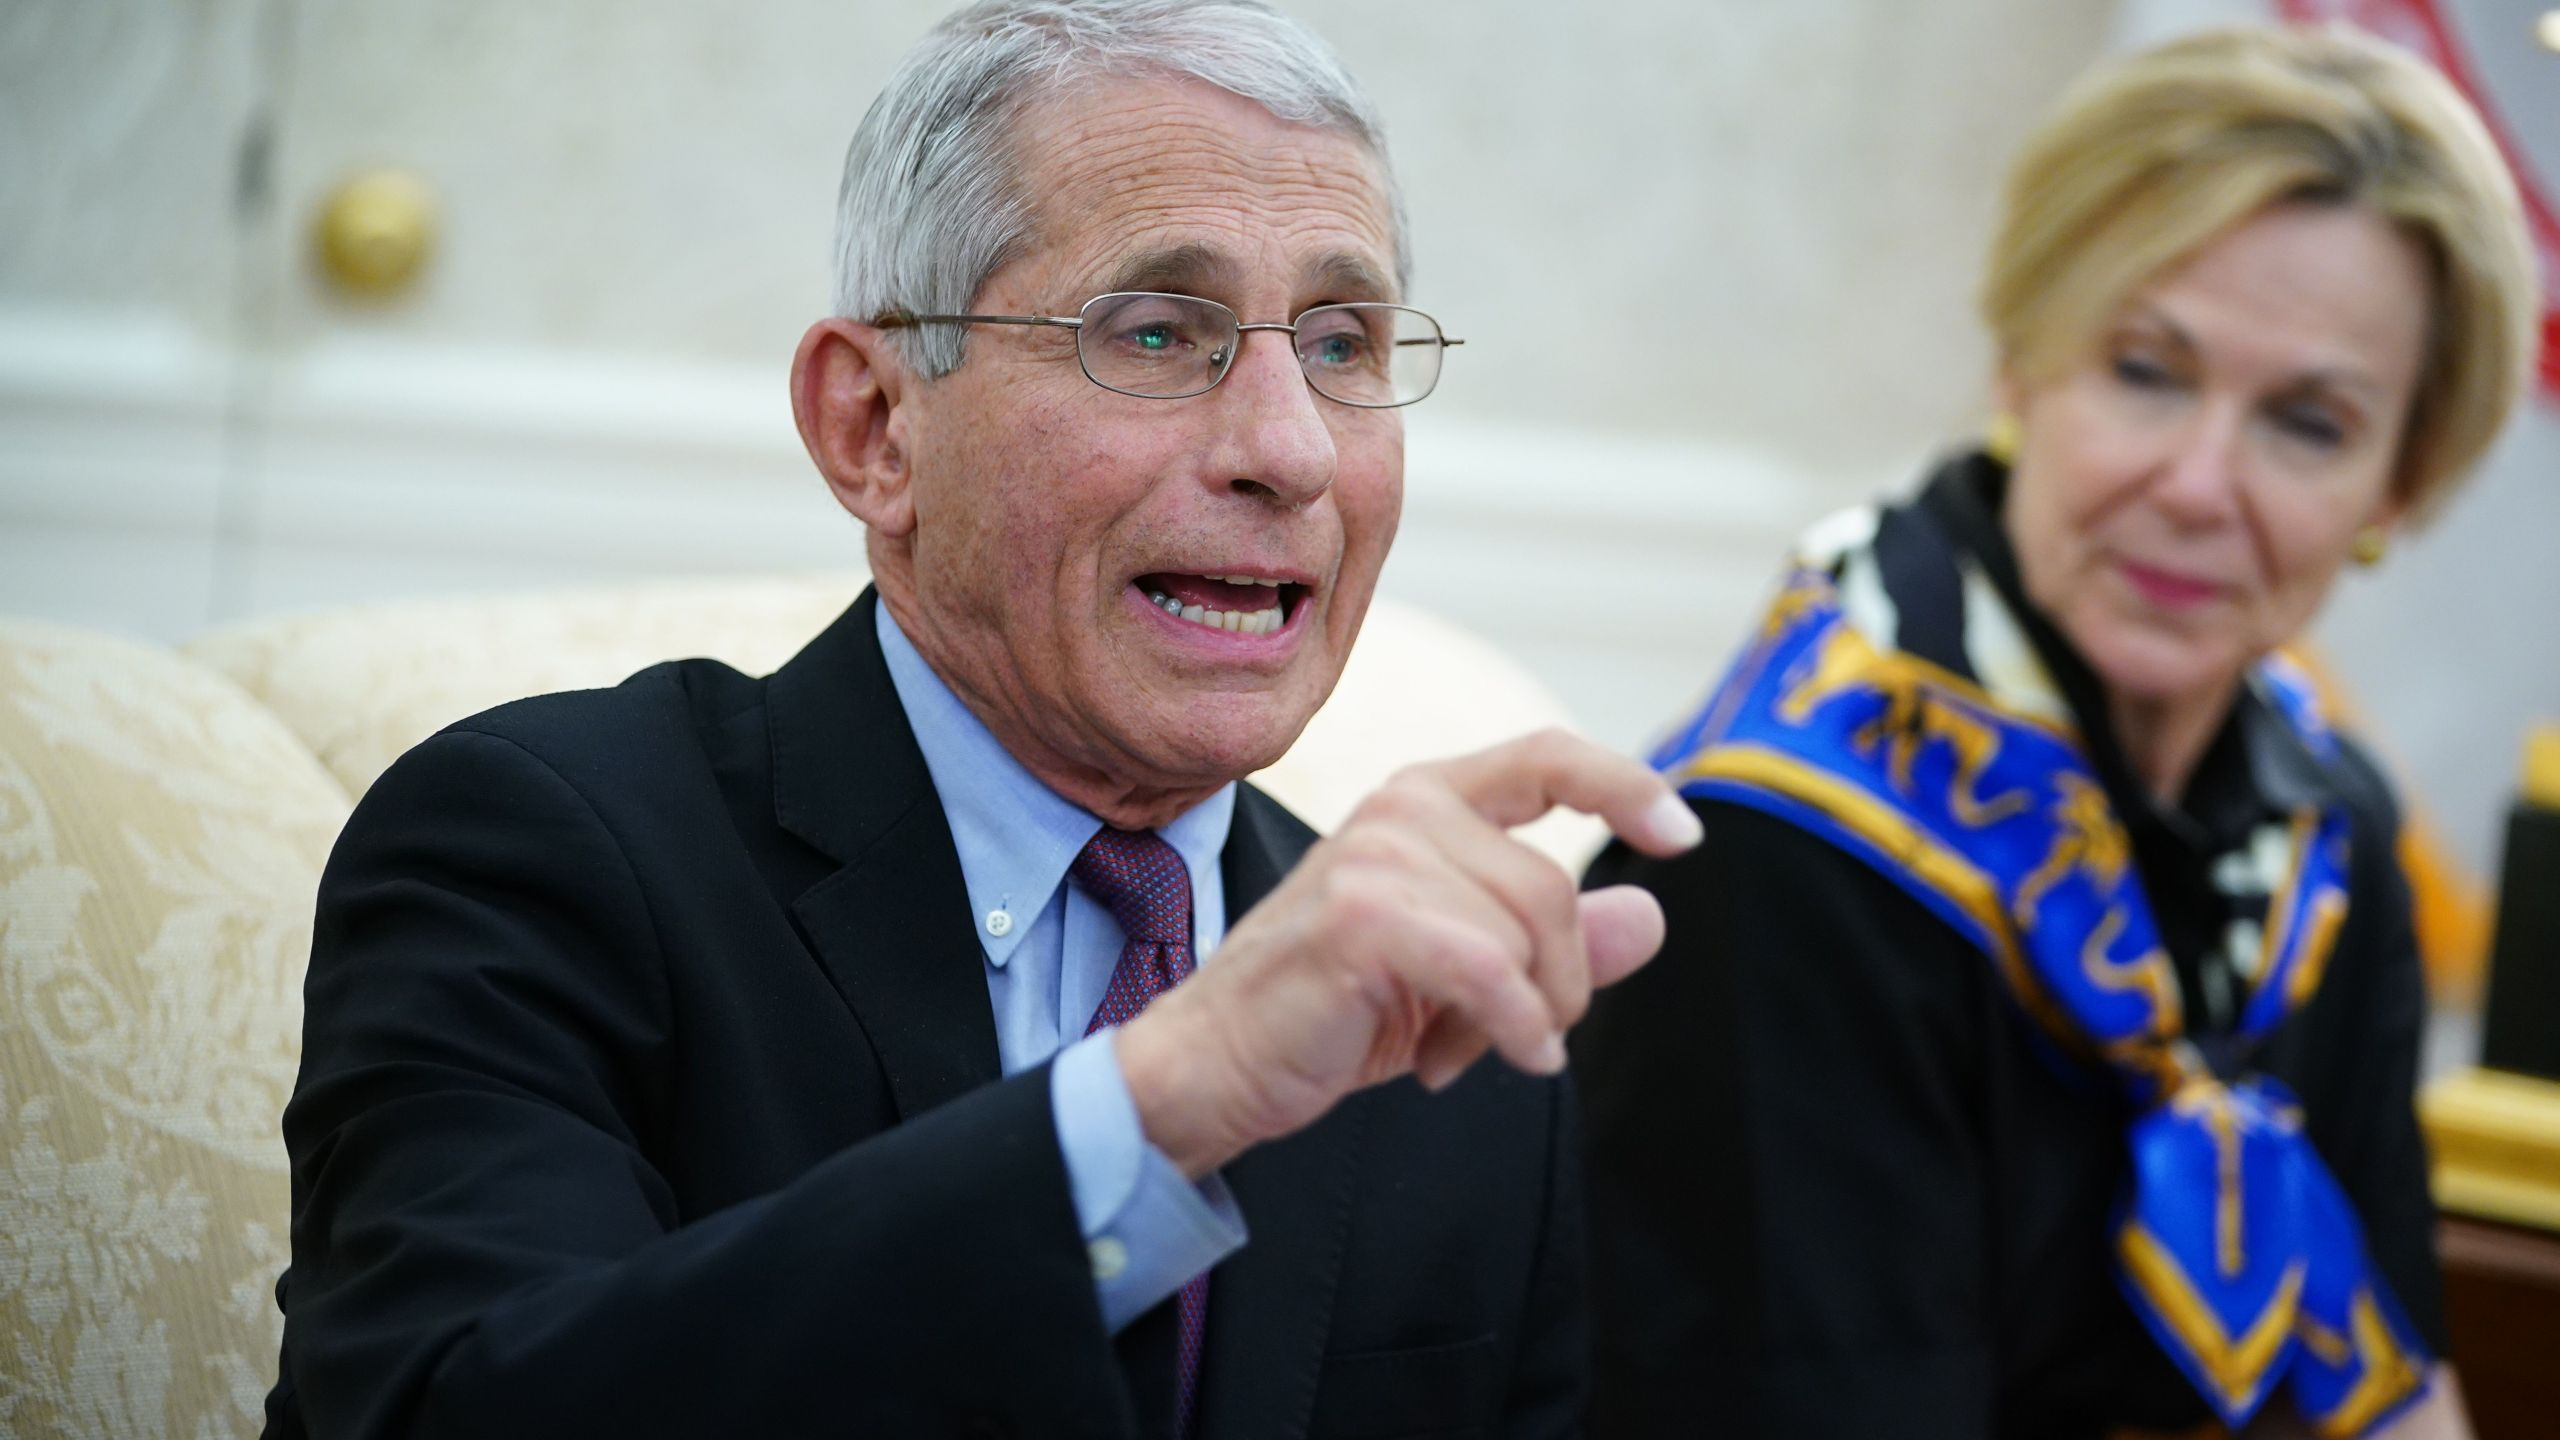 Dr. Anthony Fauci, director of the National Institute of Allergy and Infectious Diseases, speaks next to response coordinator for the White House Coronavirus Task Force, Deborah Birx, during a meeting with U.S. President Donald Trump and Louisiana Gov/ John Bel Edwards, D-LA, in the Oval Office of the White House in Washington, D.C. on April 29, 2020. (MANDEL NGAN/AFP via Getty Images)